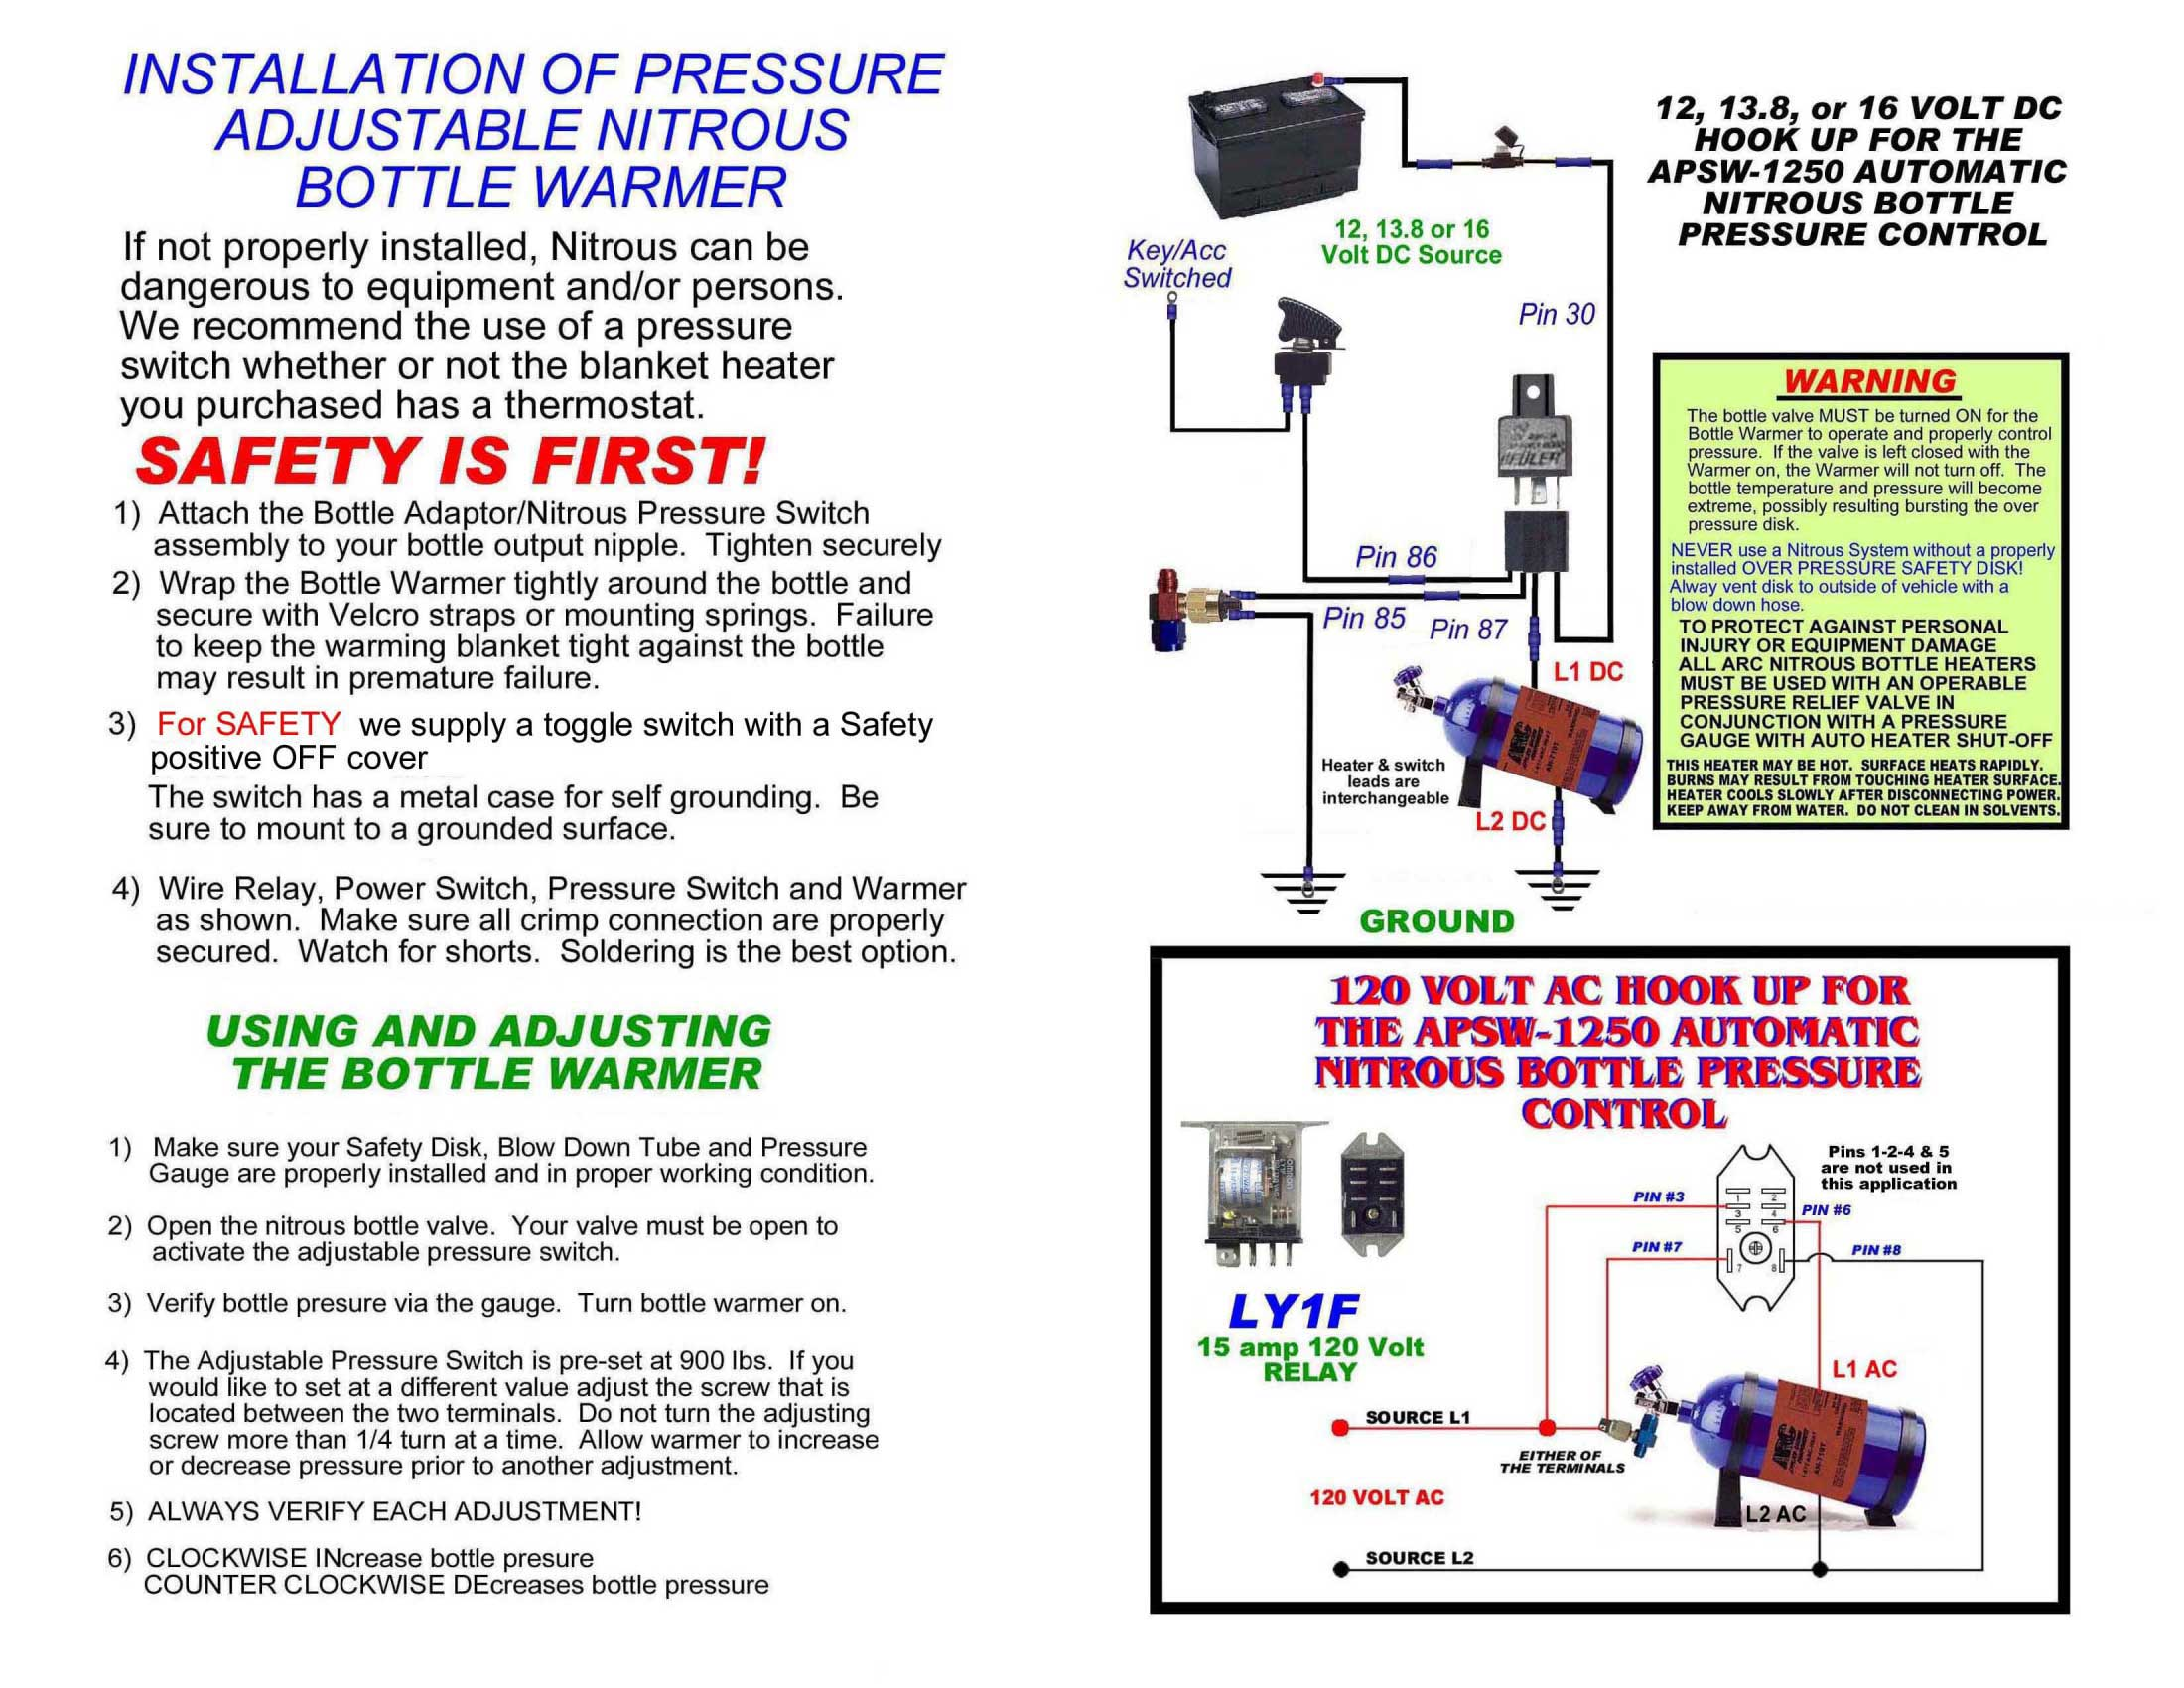 Oil Pressure Kill Switch Wiring Diagram Custom How To Wire A Water Well Mps Racing Instructions Rh Mpsracing Com Pump